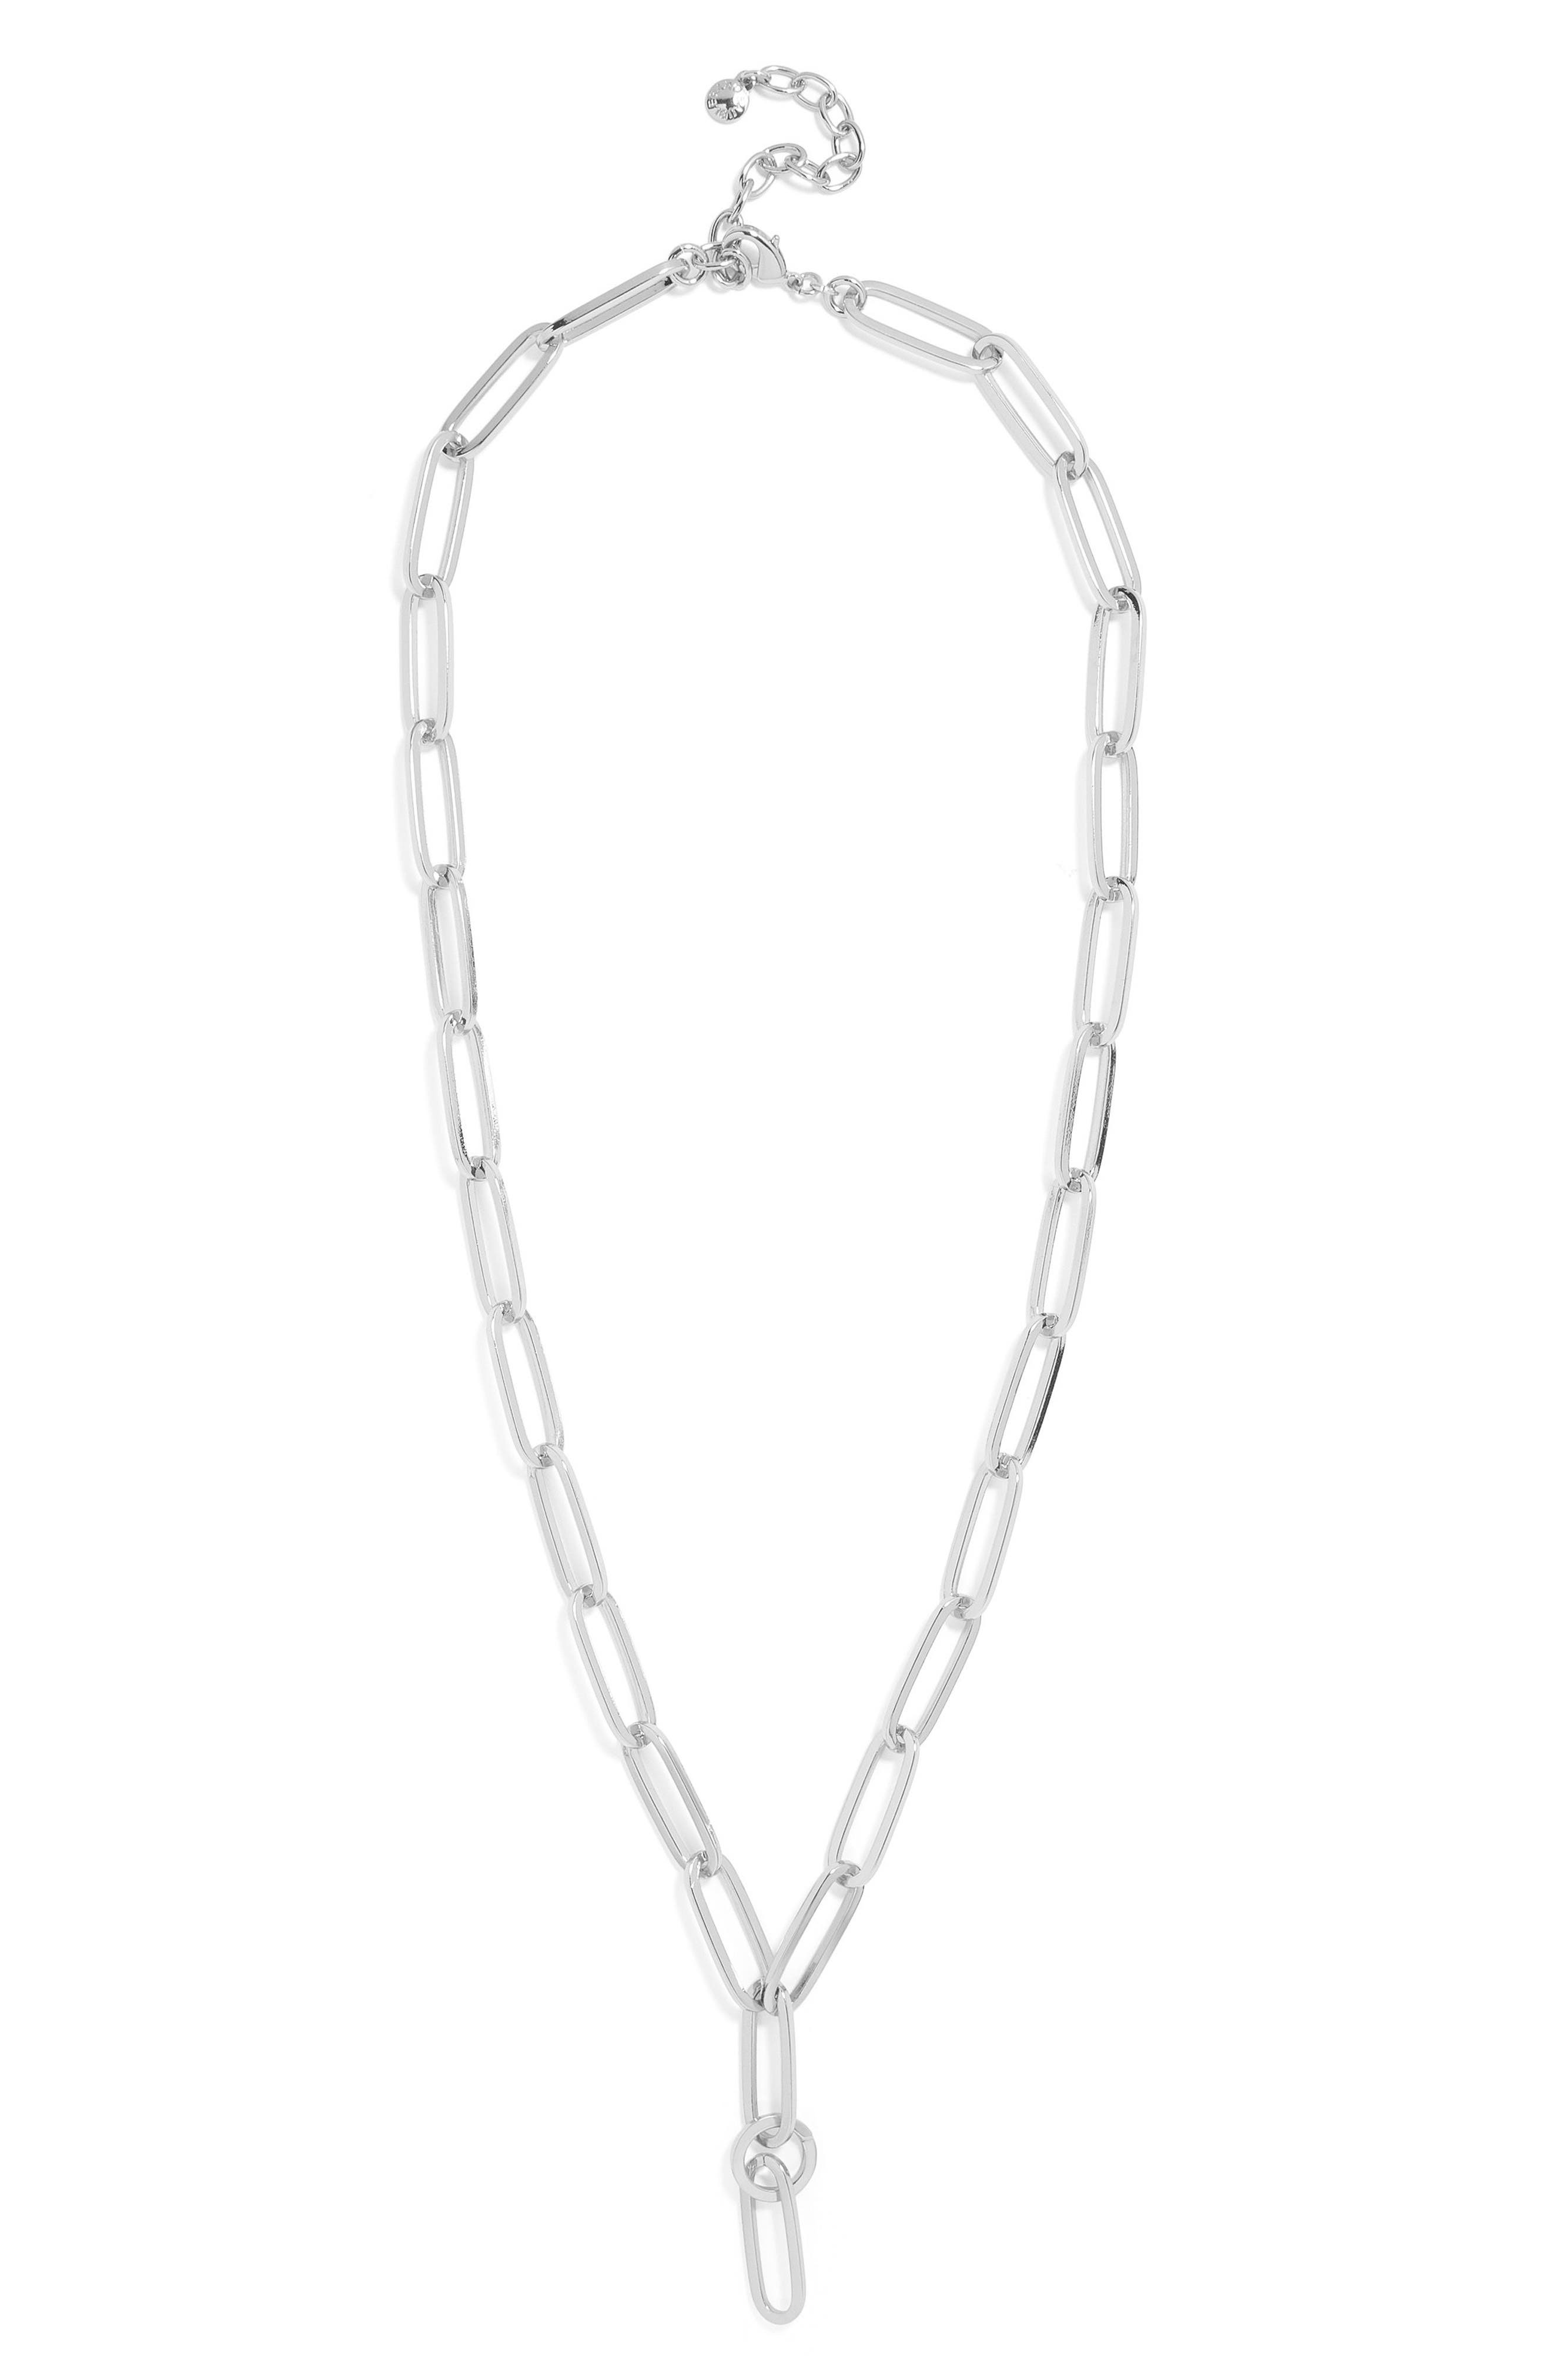 Manita Linked Pendant Necklace,                             Alternate thumbnail 2, color,                             Silver